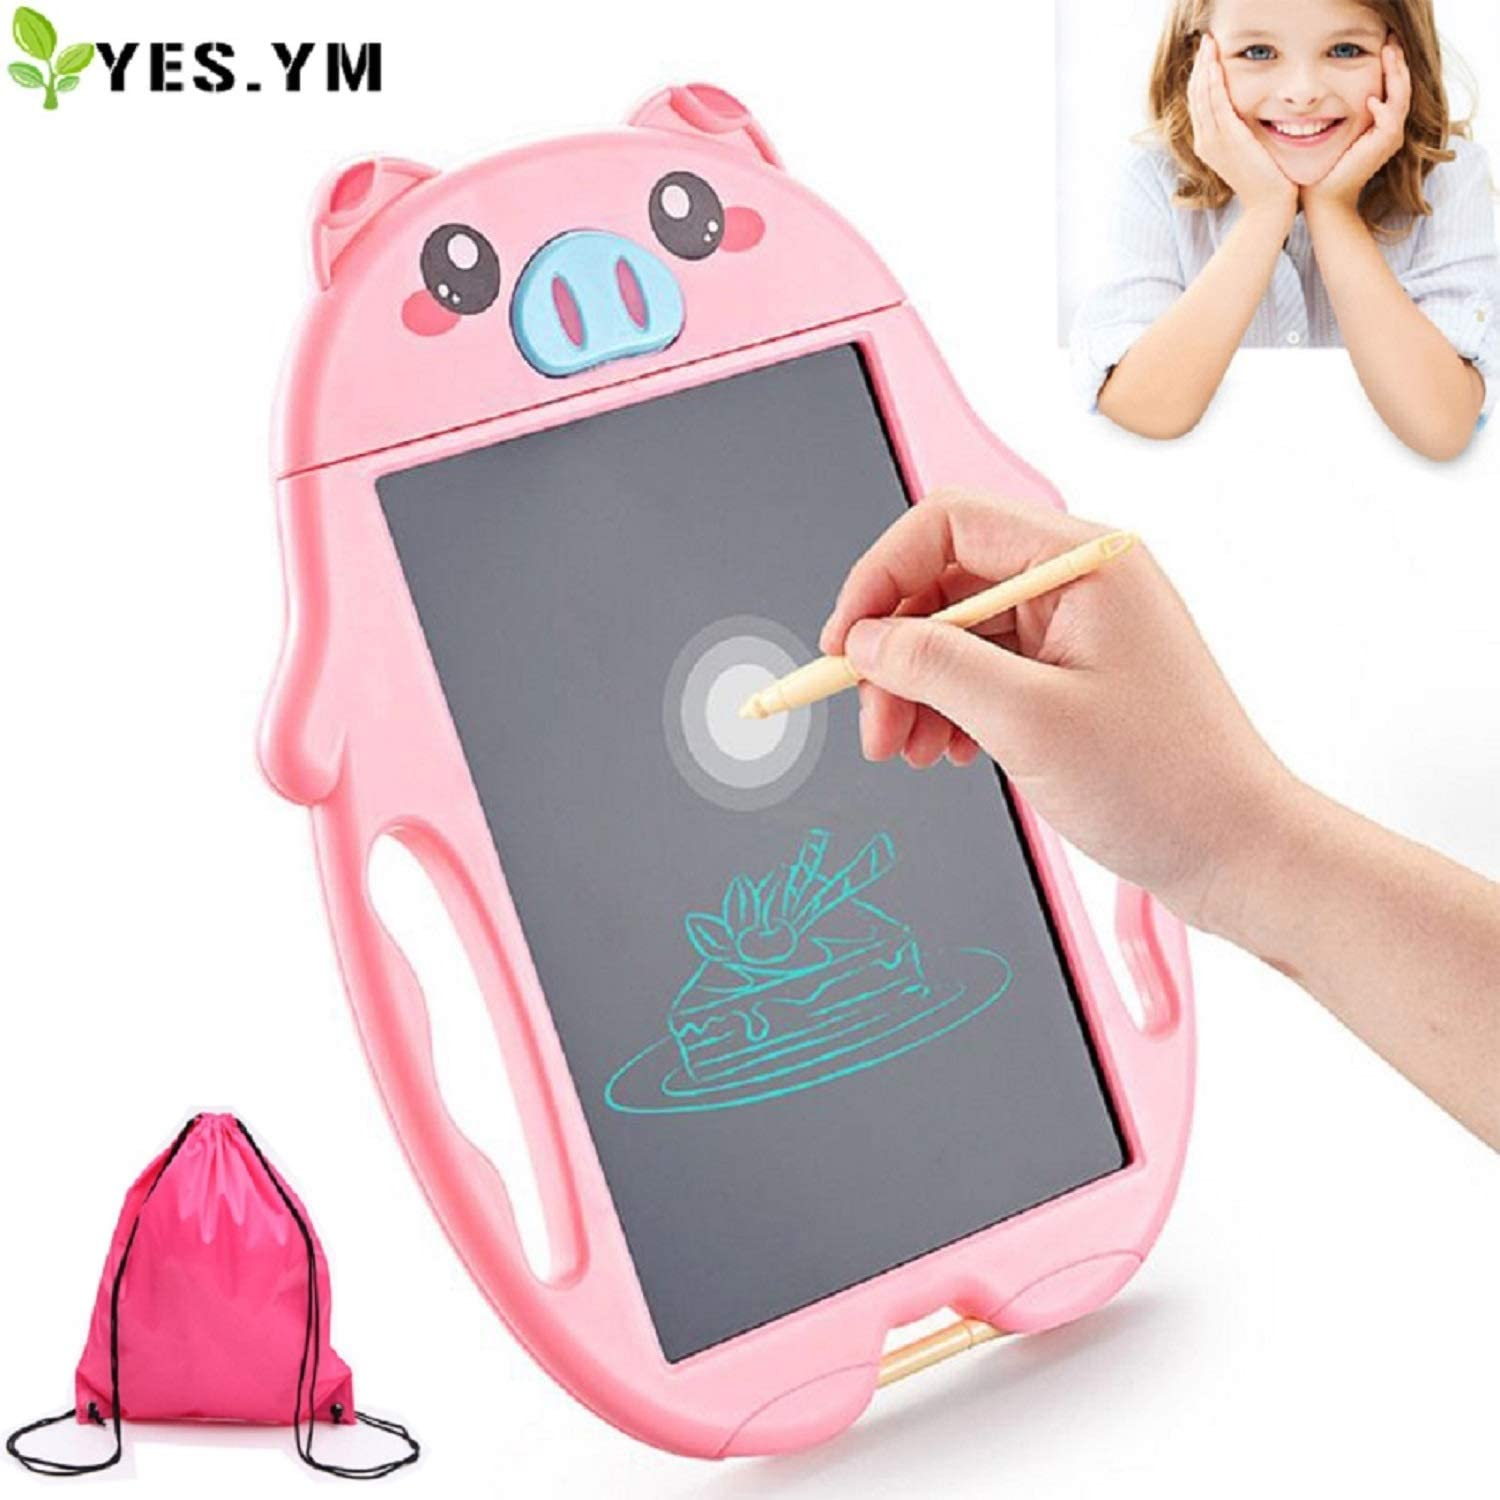 YES.YM LCD Doodle Board for 3-6 Year Old Girls Gifts,Drawing Board for Little Girl Educational Birthday, Writing Tablet Doodle Board for Kids Toddlers as Girls Toys Age 3 -6 (Pink)